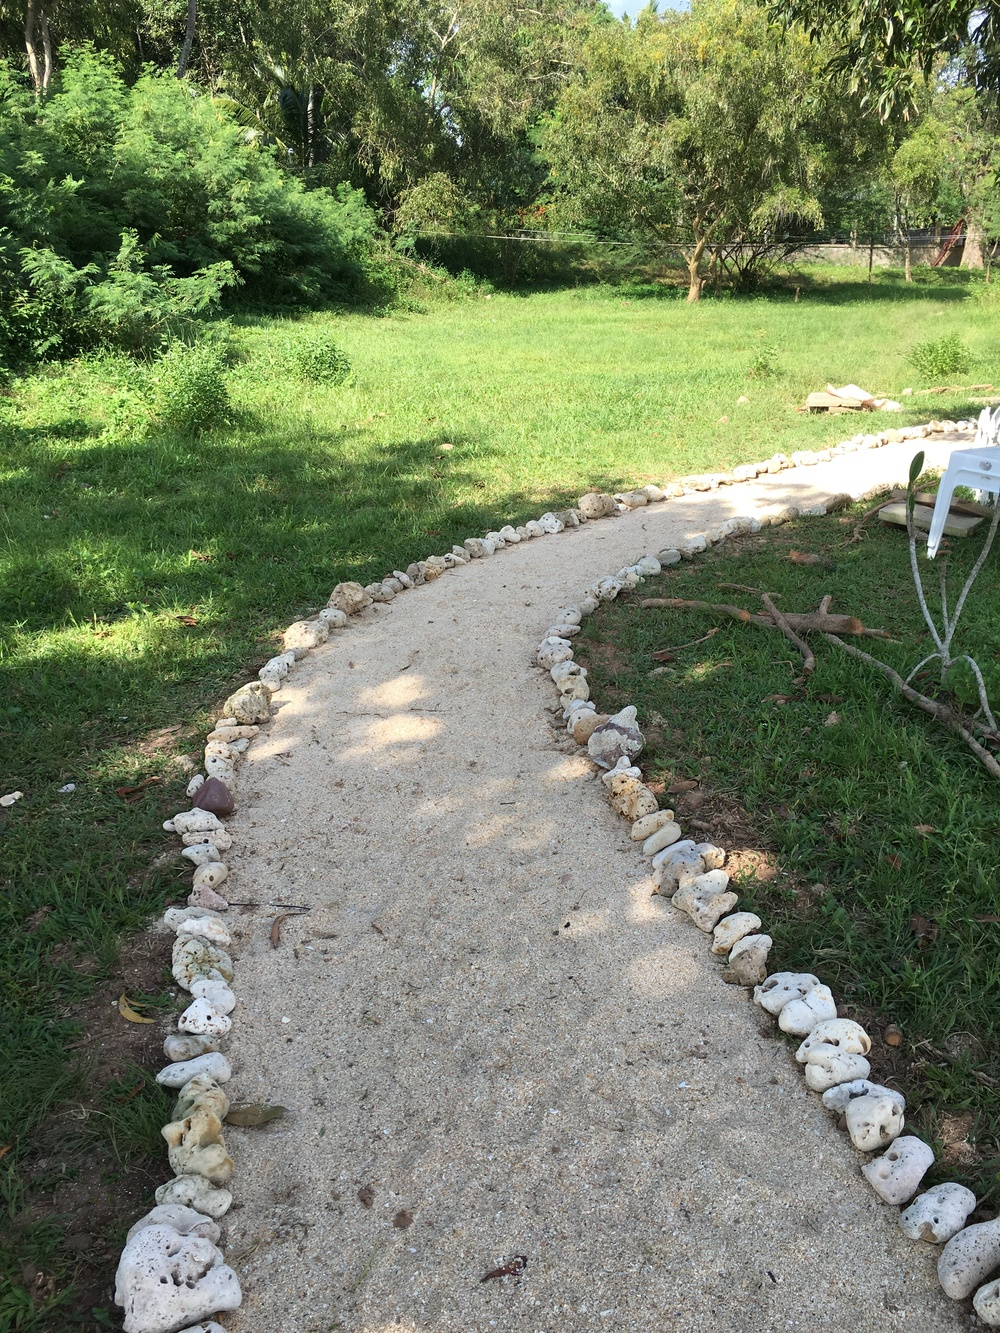 The walkway from the restaurant to the beach.  Sand, lined with coral.  This will be a lot better than trudging across the long grass which may hide snakes, frogs, centipedes, and other interesting characters...